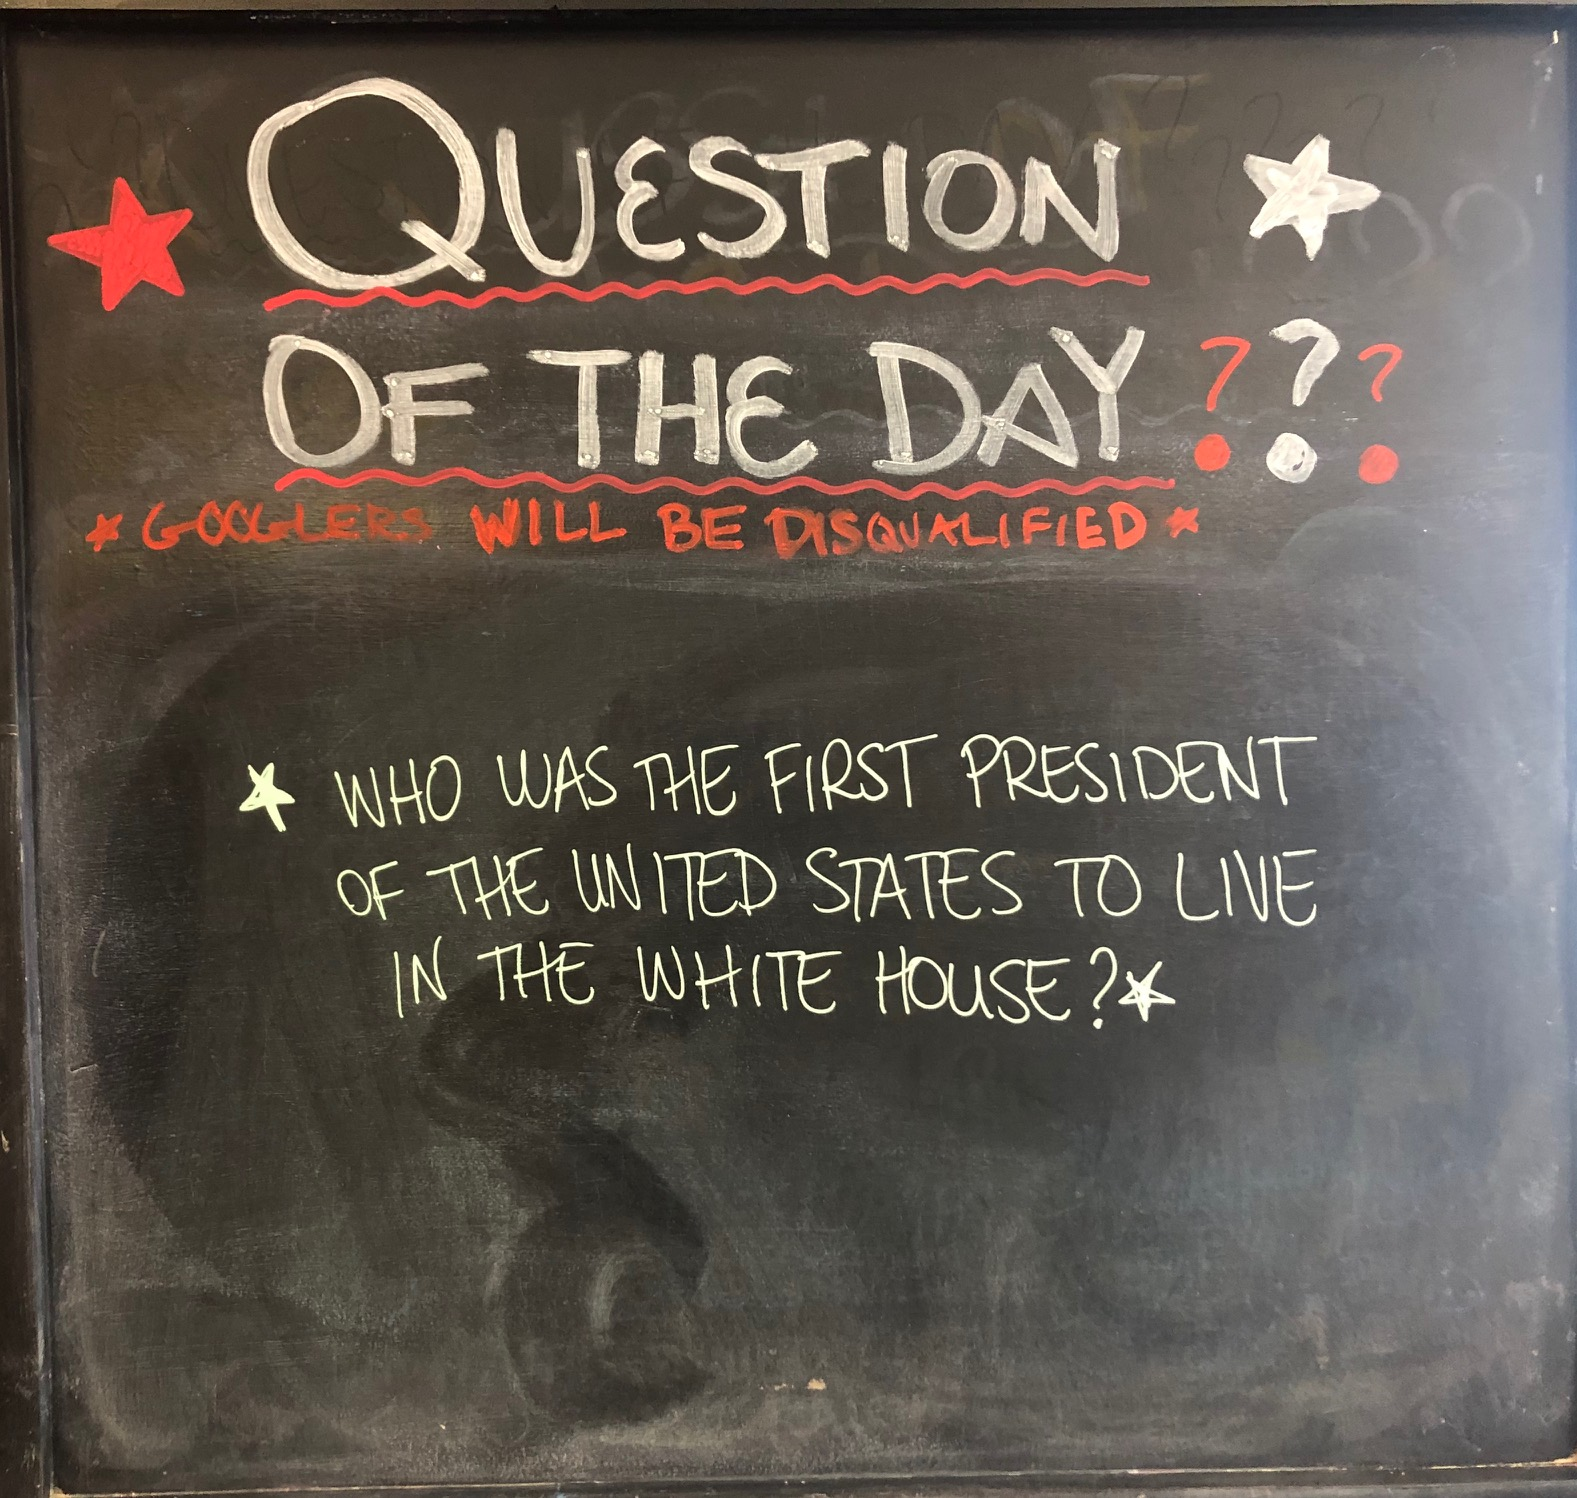 question of the day example - who was the first president to live in the white house? Googlers will be disqualified.